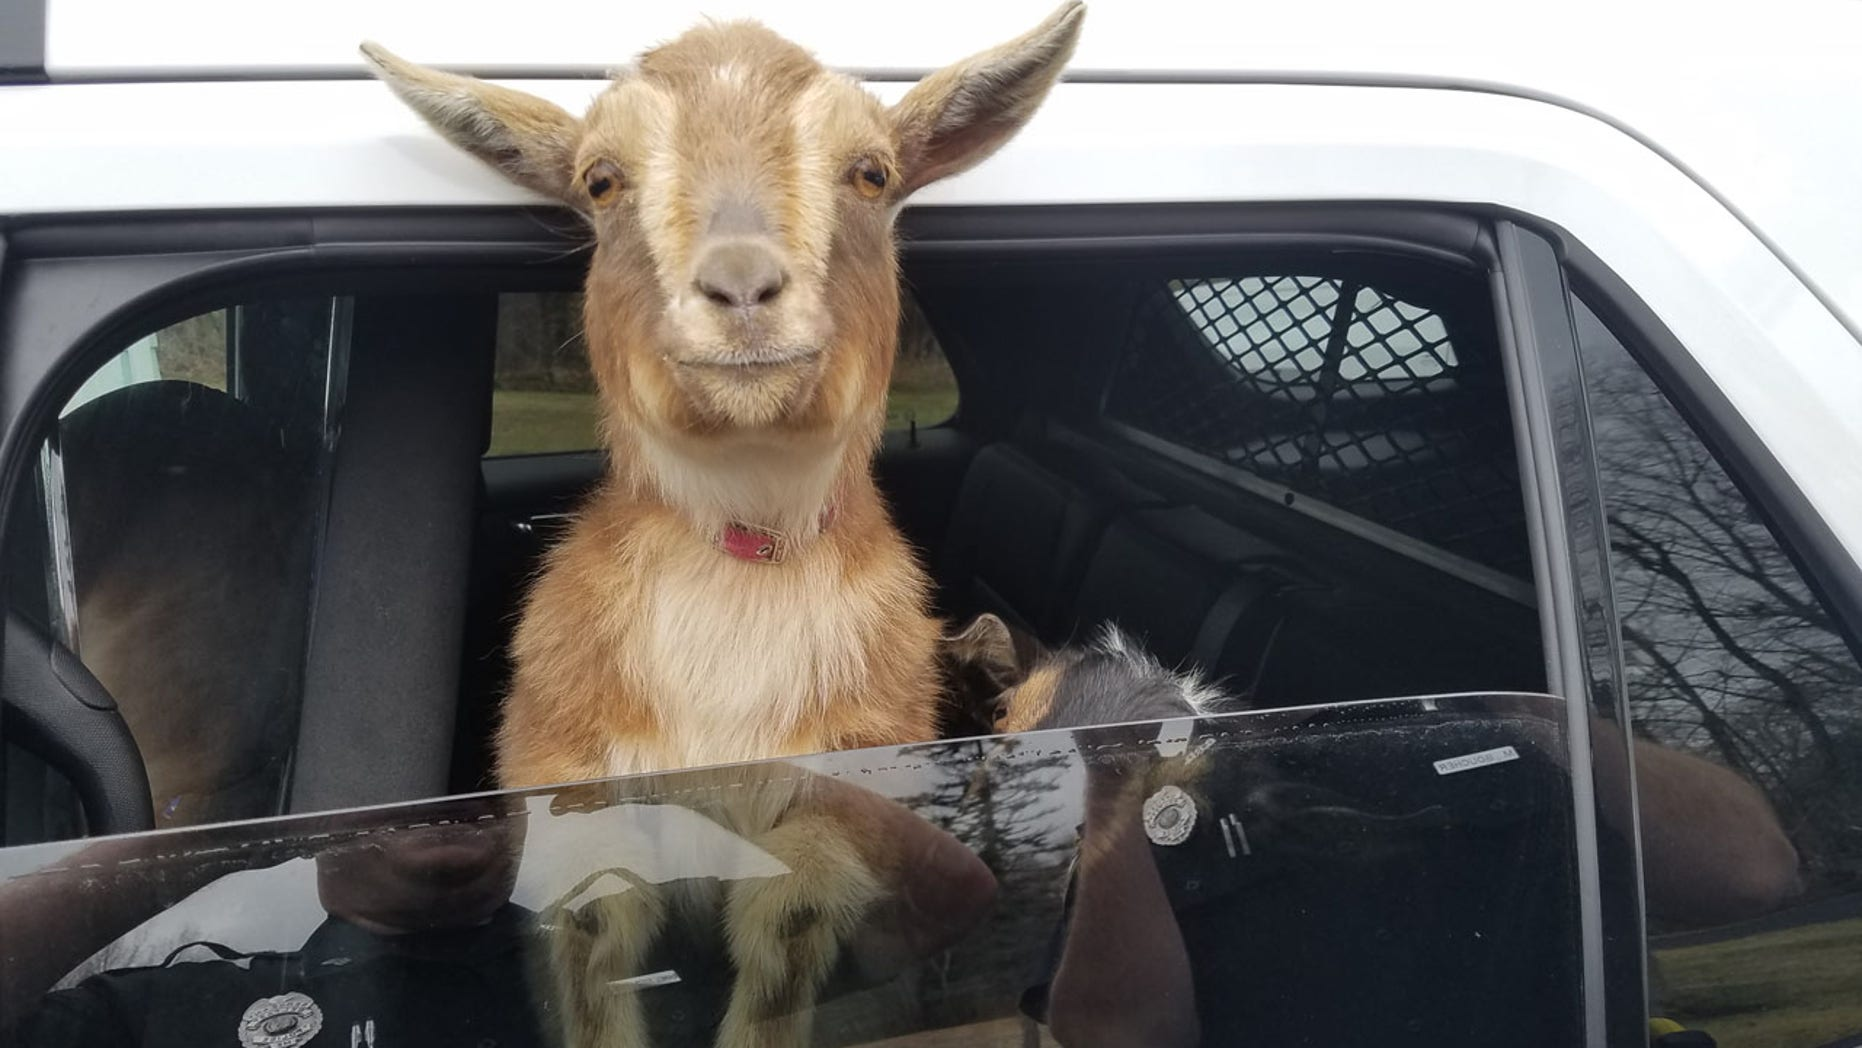 Sgt. Daniel Fitzpatrick of the Belfast Police Department in Belfast, Maine drives around with two lost goats in his police car on Sunday, April 23, 2017, looking for their owner.